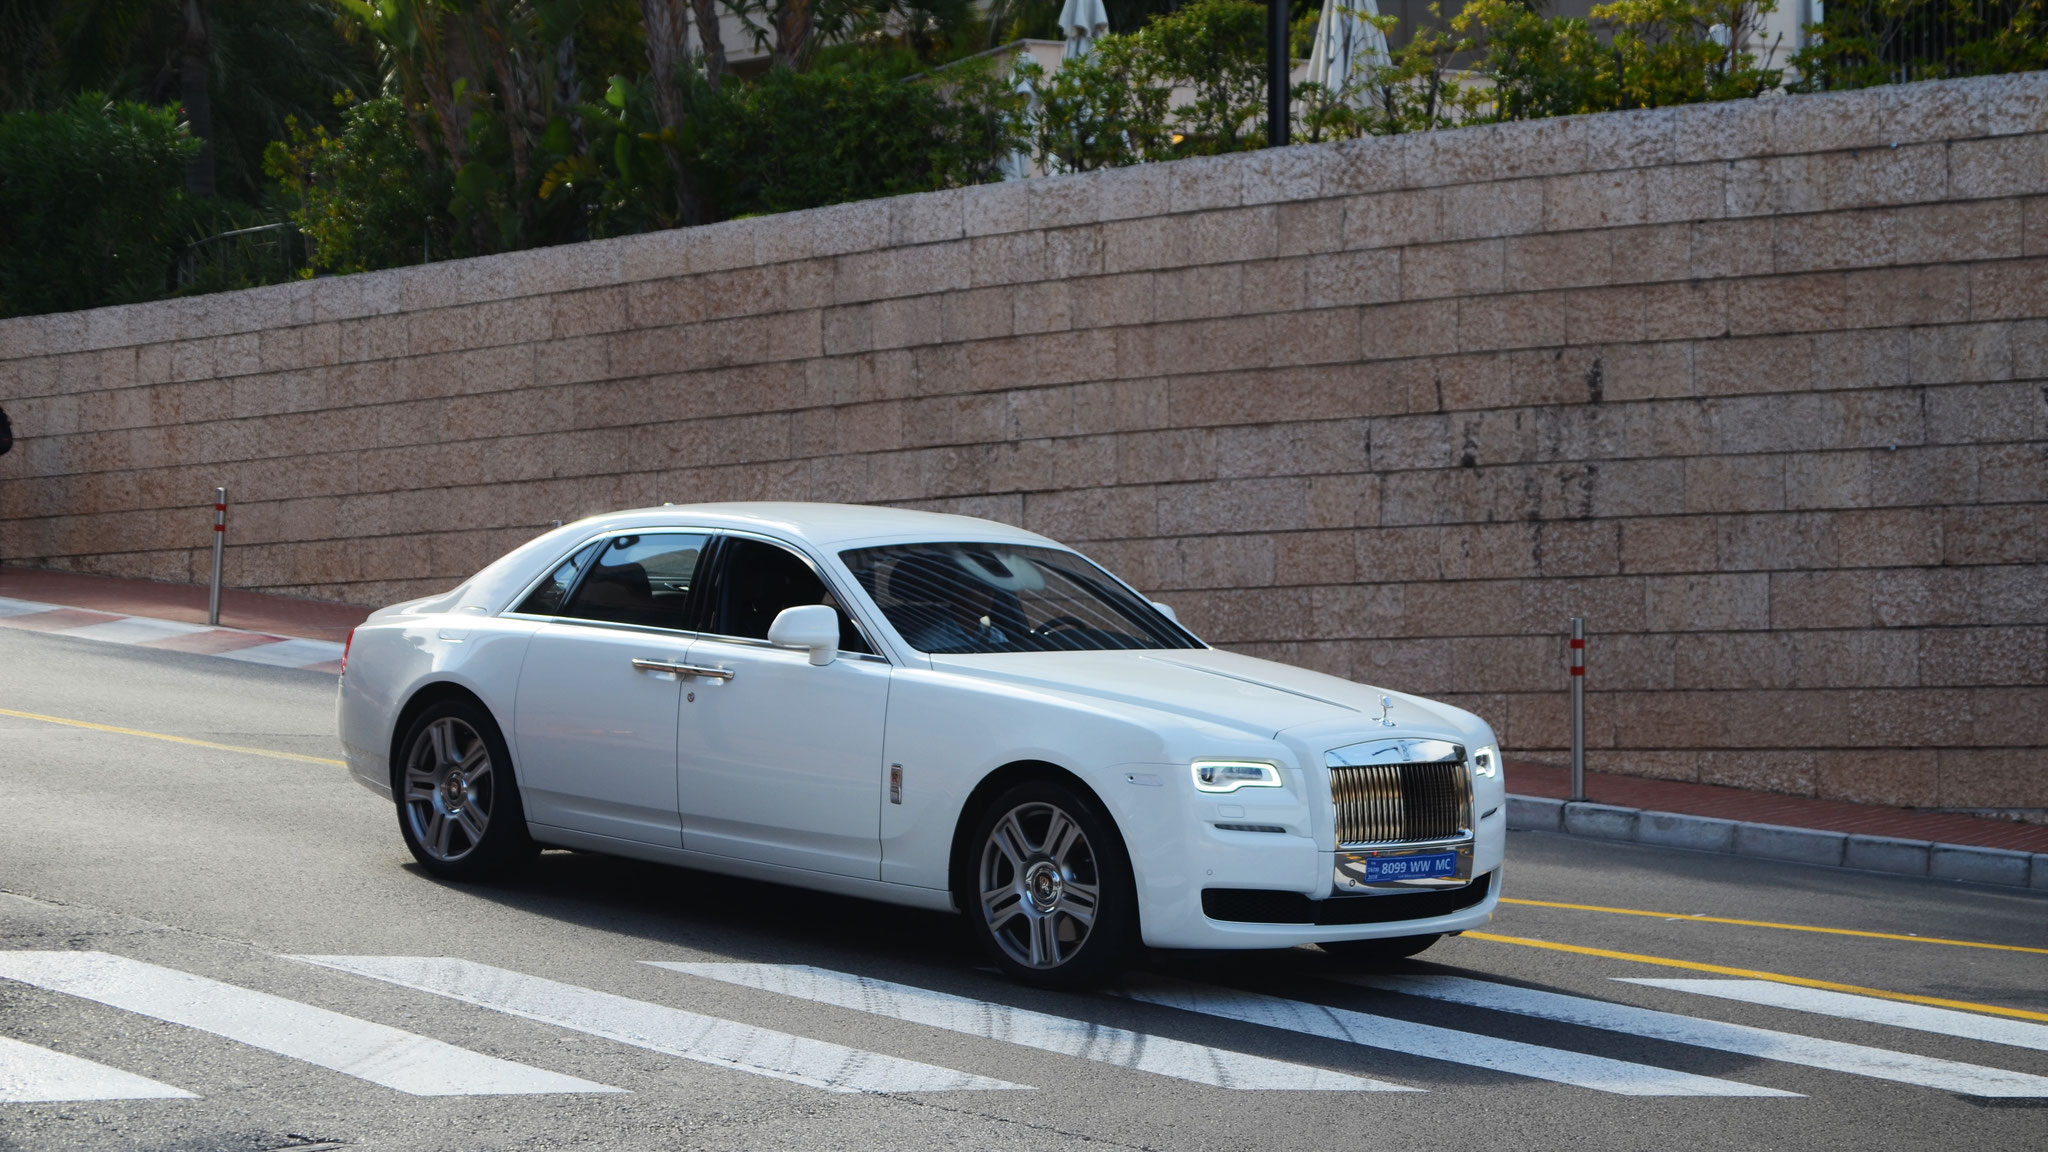 Rolls Royce Ghost Series II - 8099-WW-MC (MC)